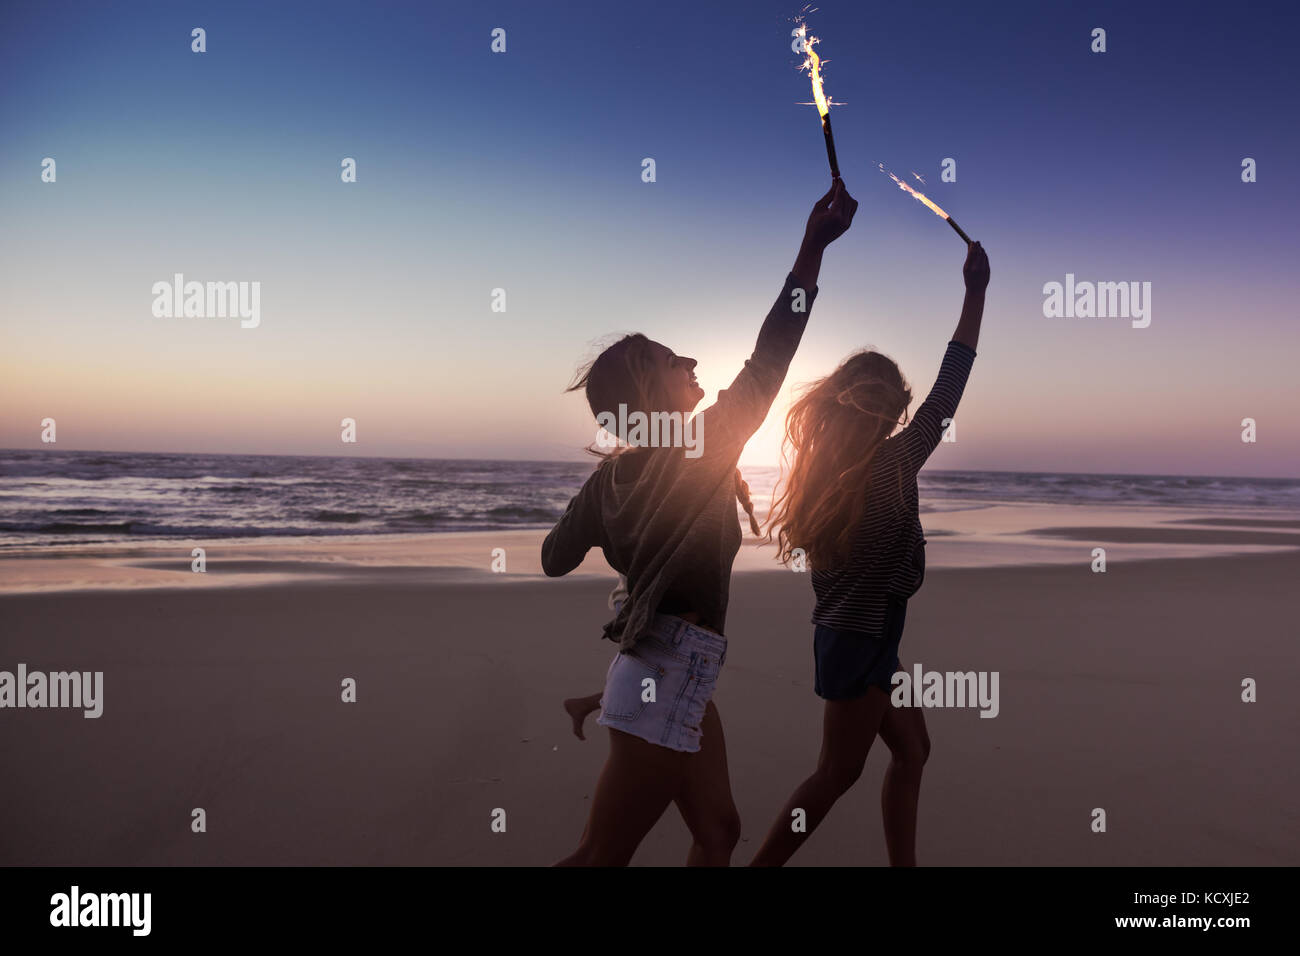 Teenage friends running on a beach with fireworks - Stock Image